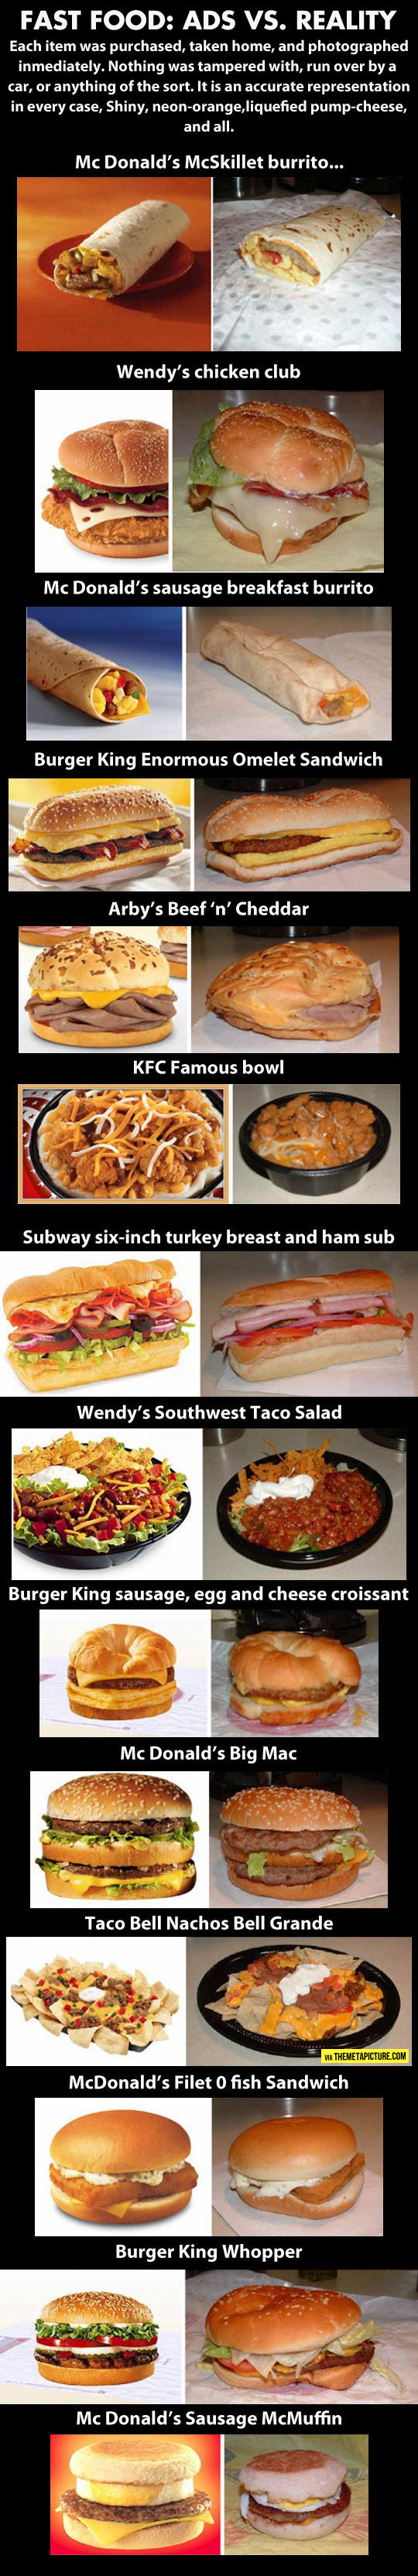 Fast Food: Reality Vs. Advertising